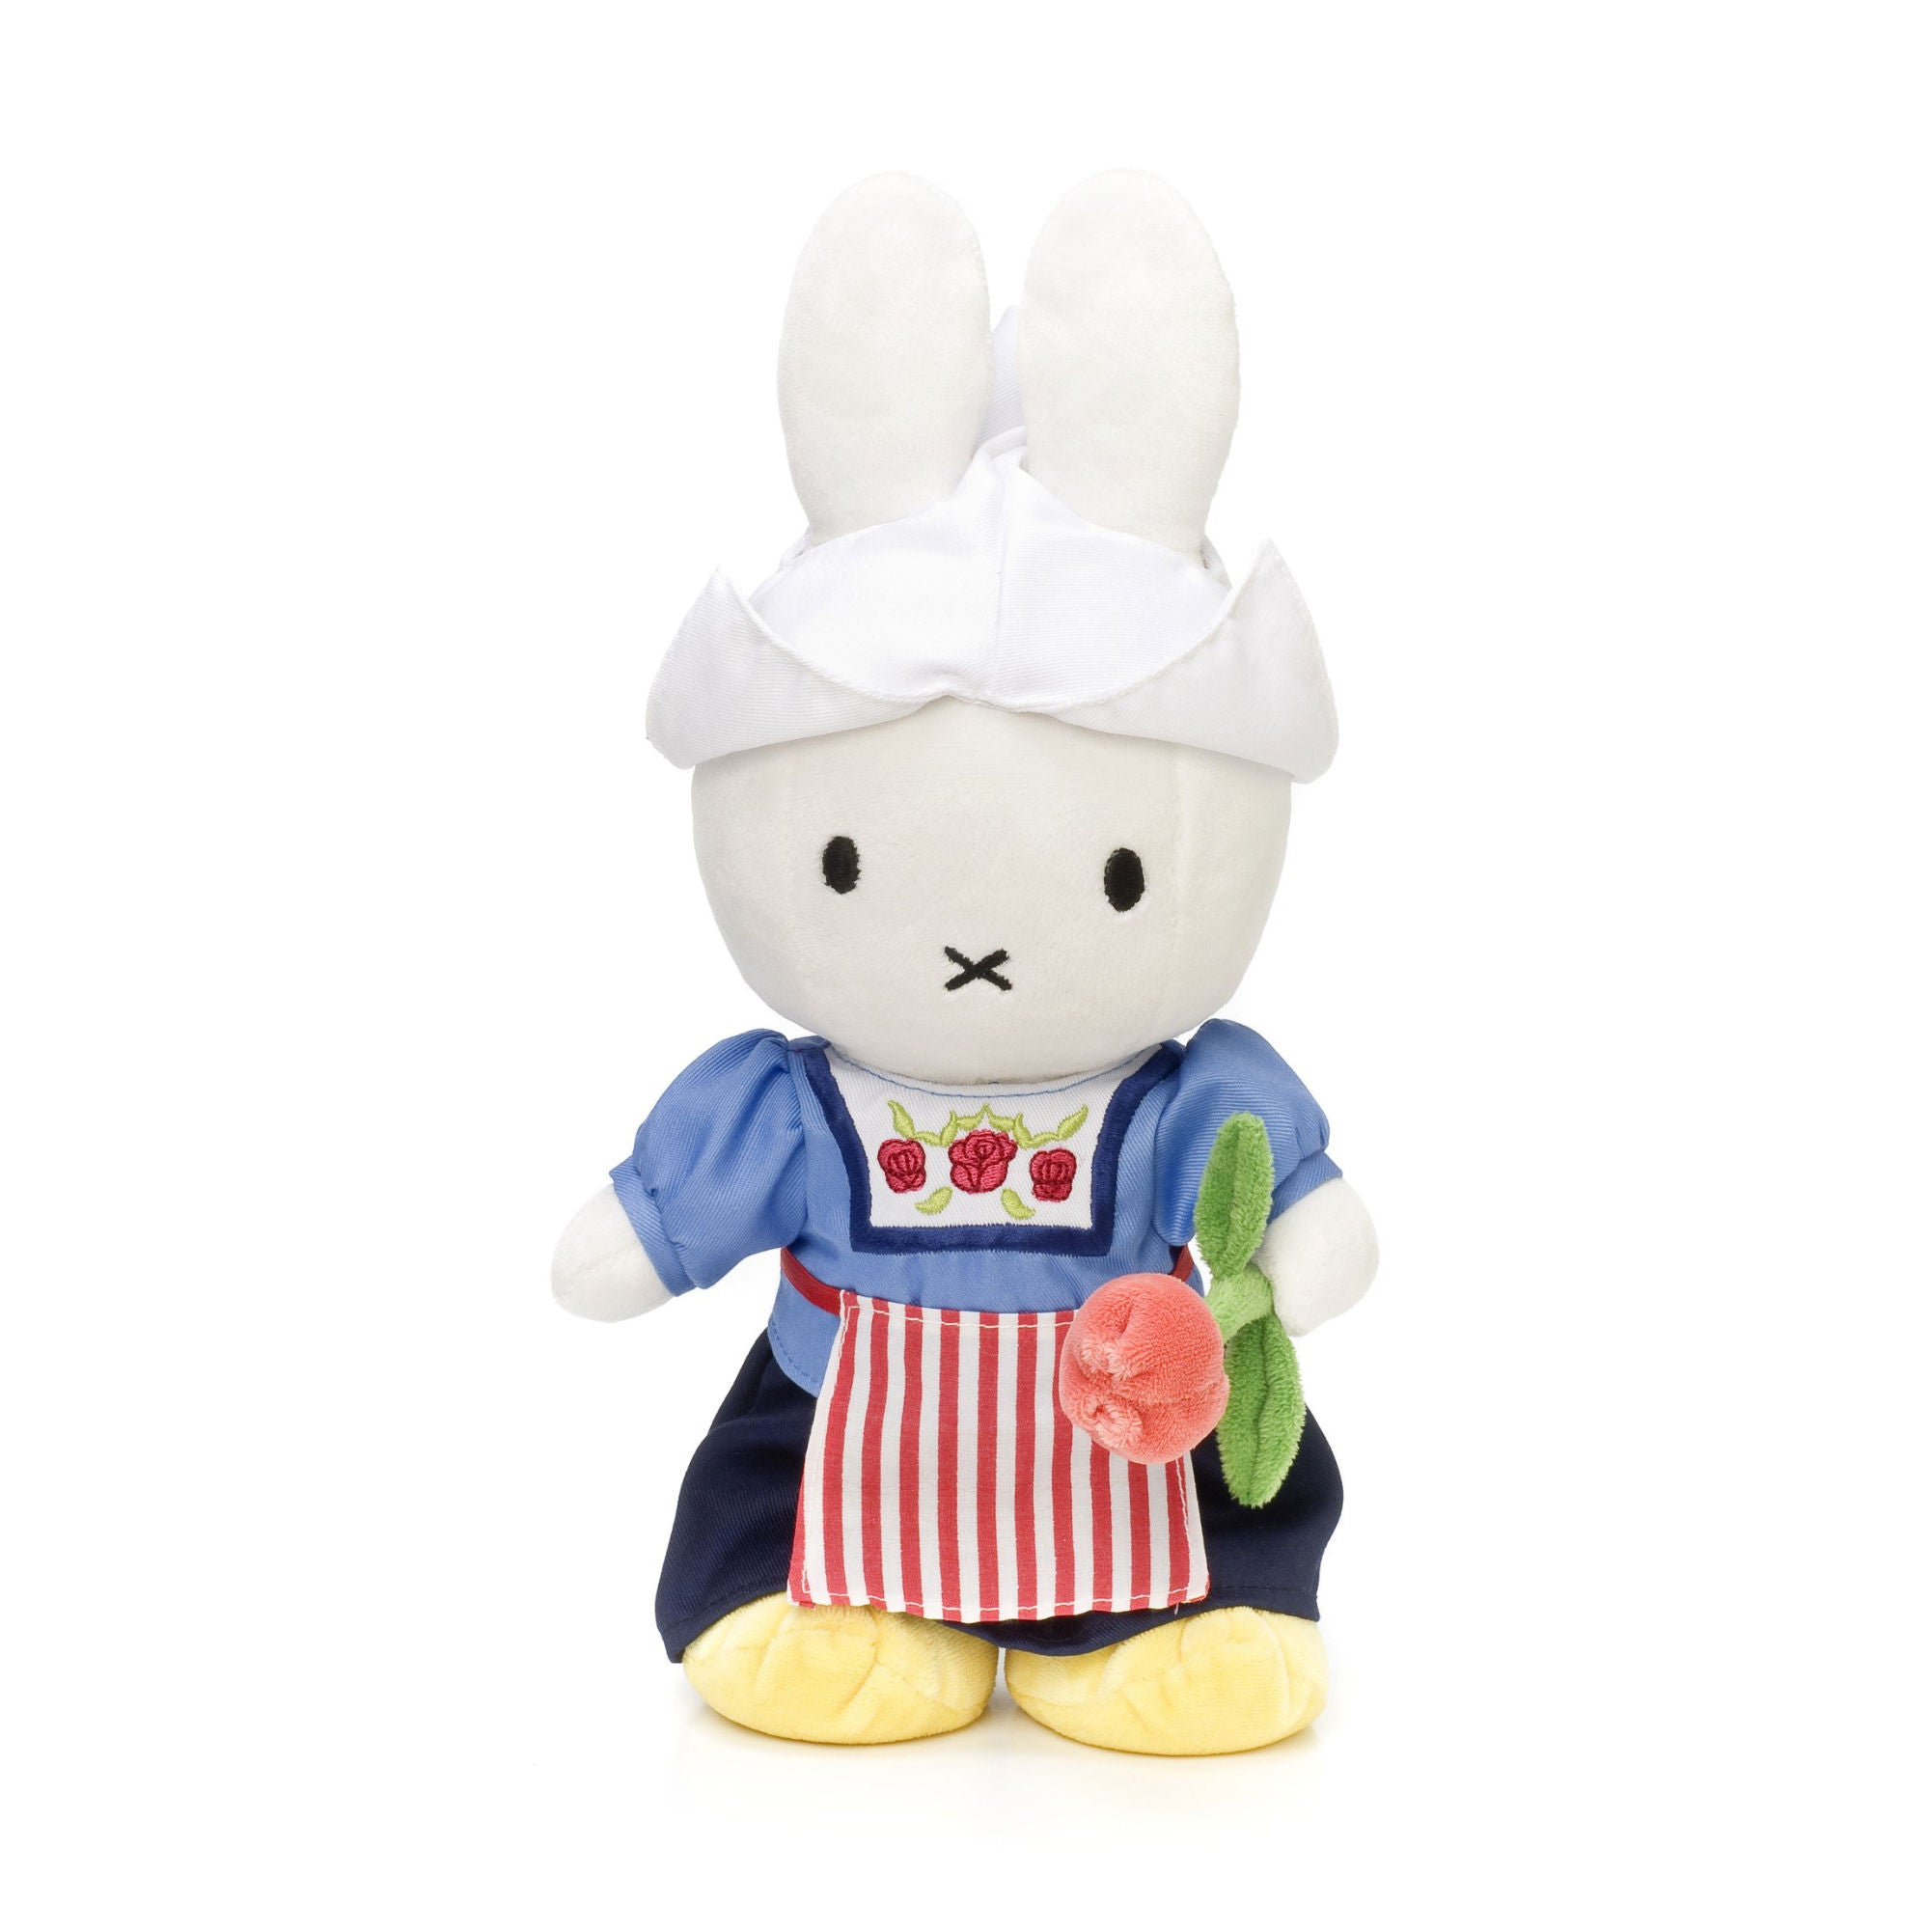 Miffy Soft Toy 24cm , farmer's wife with tulip dress